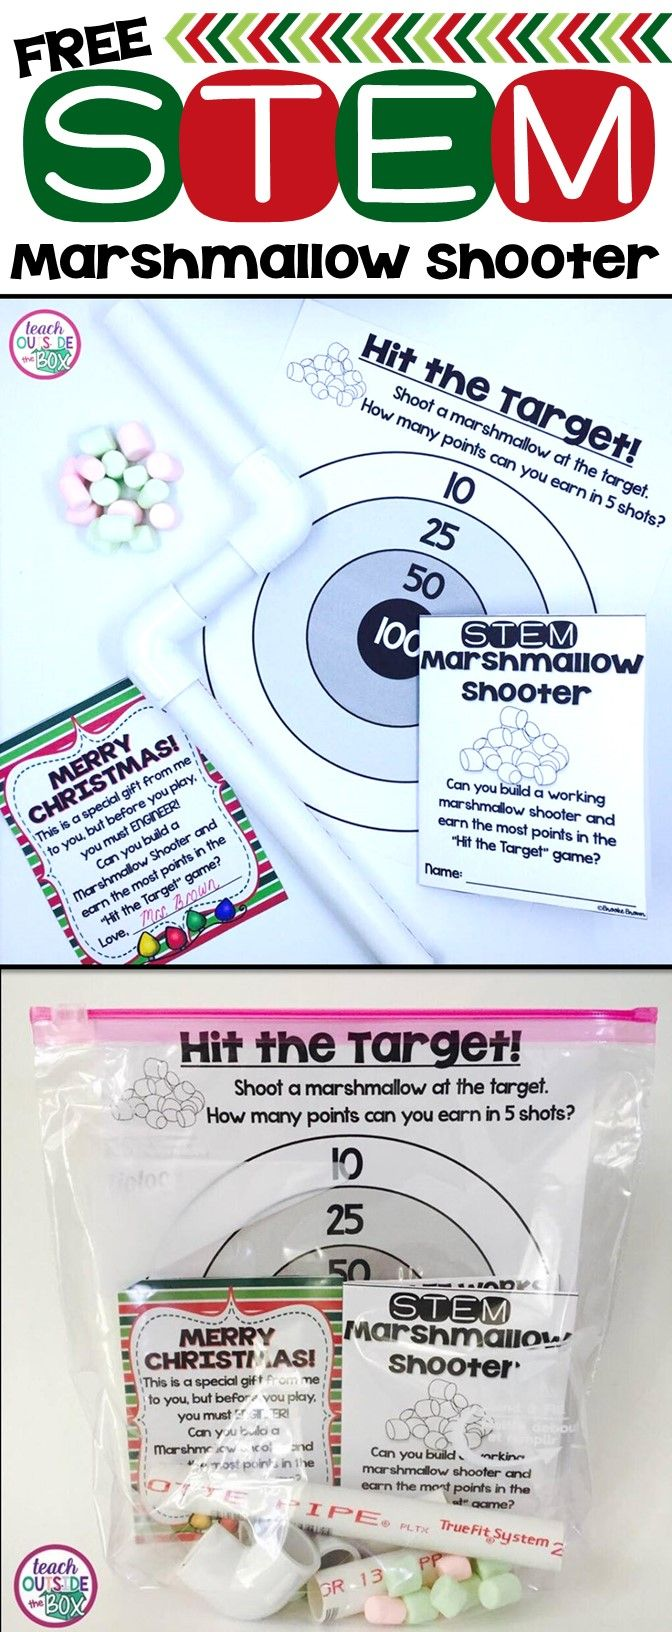 FREE STEM Challenge Marshmallow Shooter! Perfect for a holiday activity or Christmas gift for kids! via @mrsbrookebrown